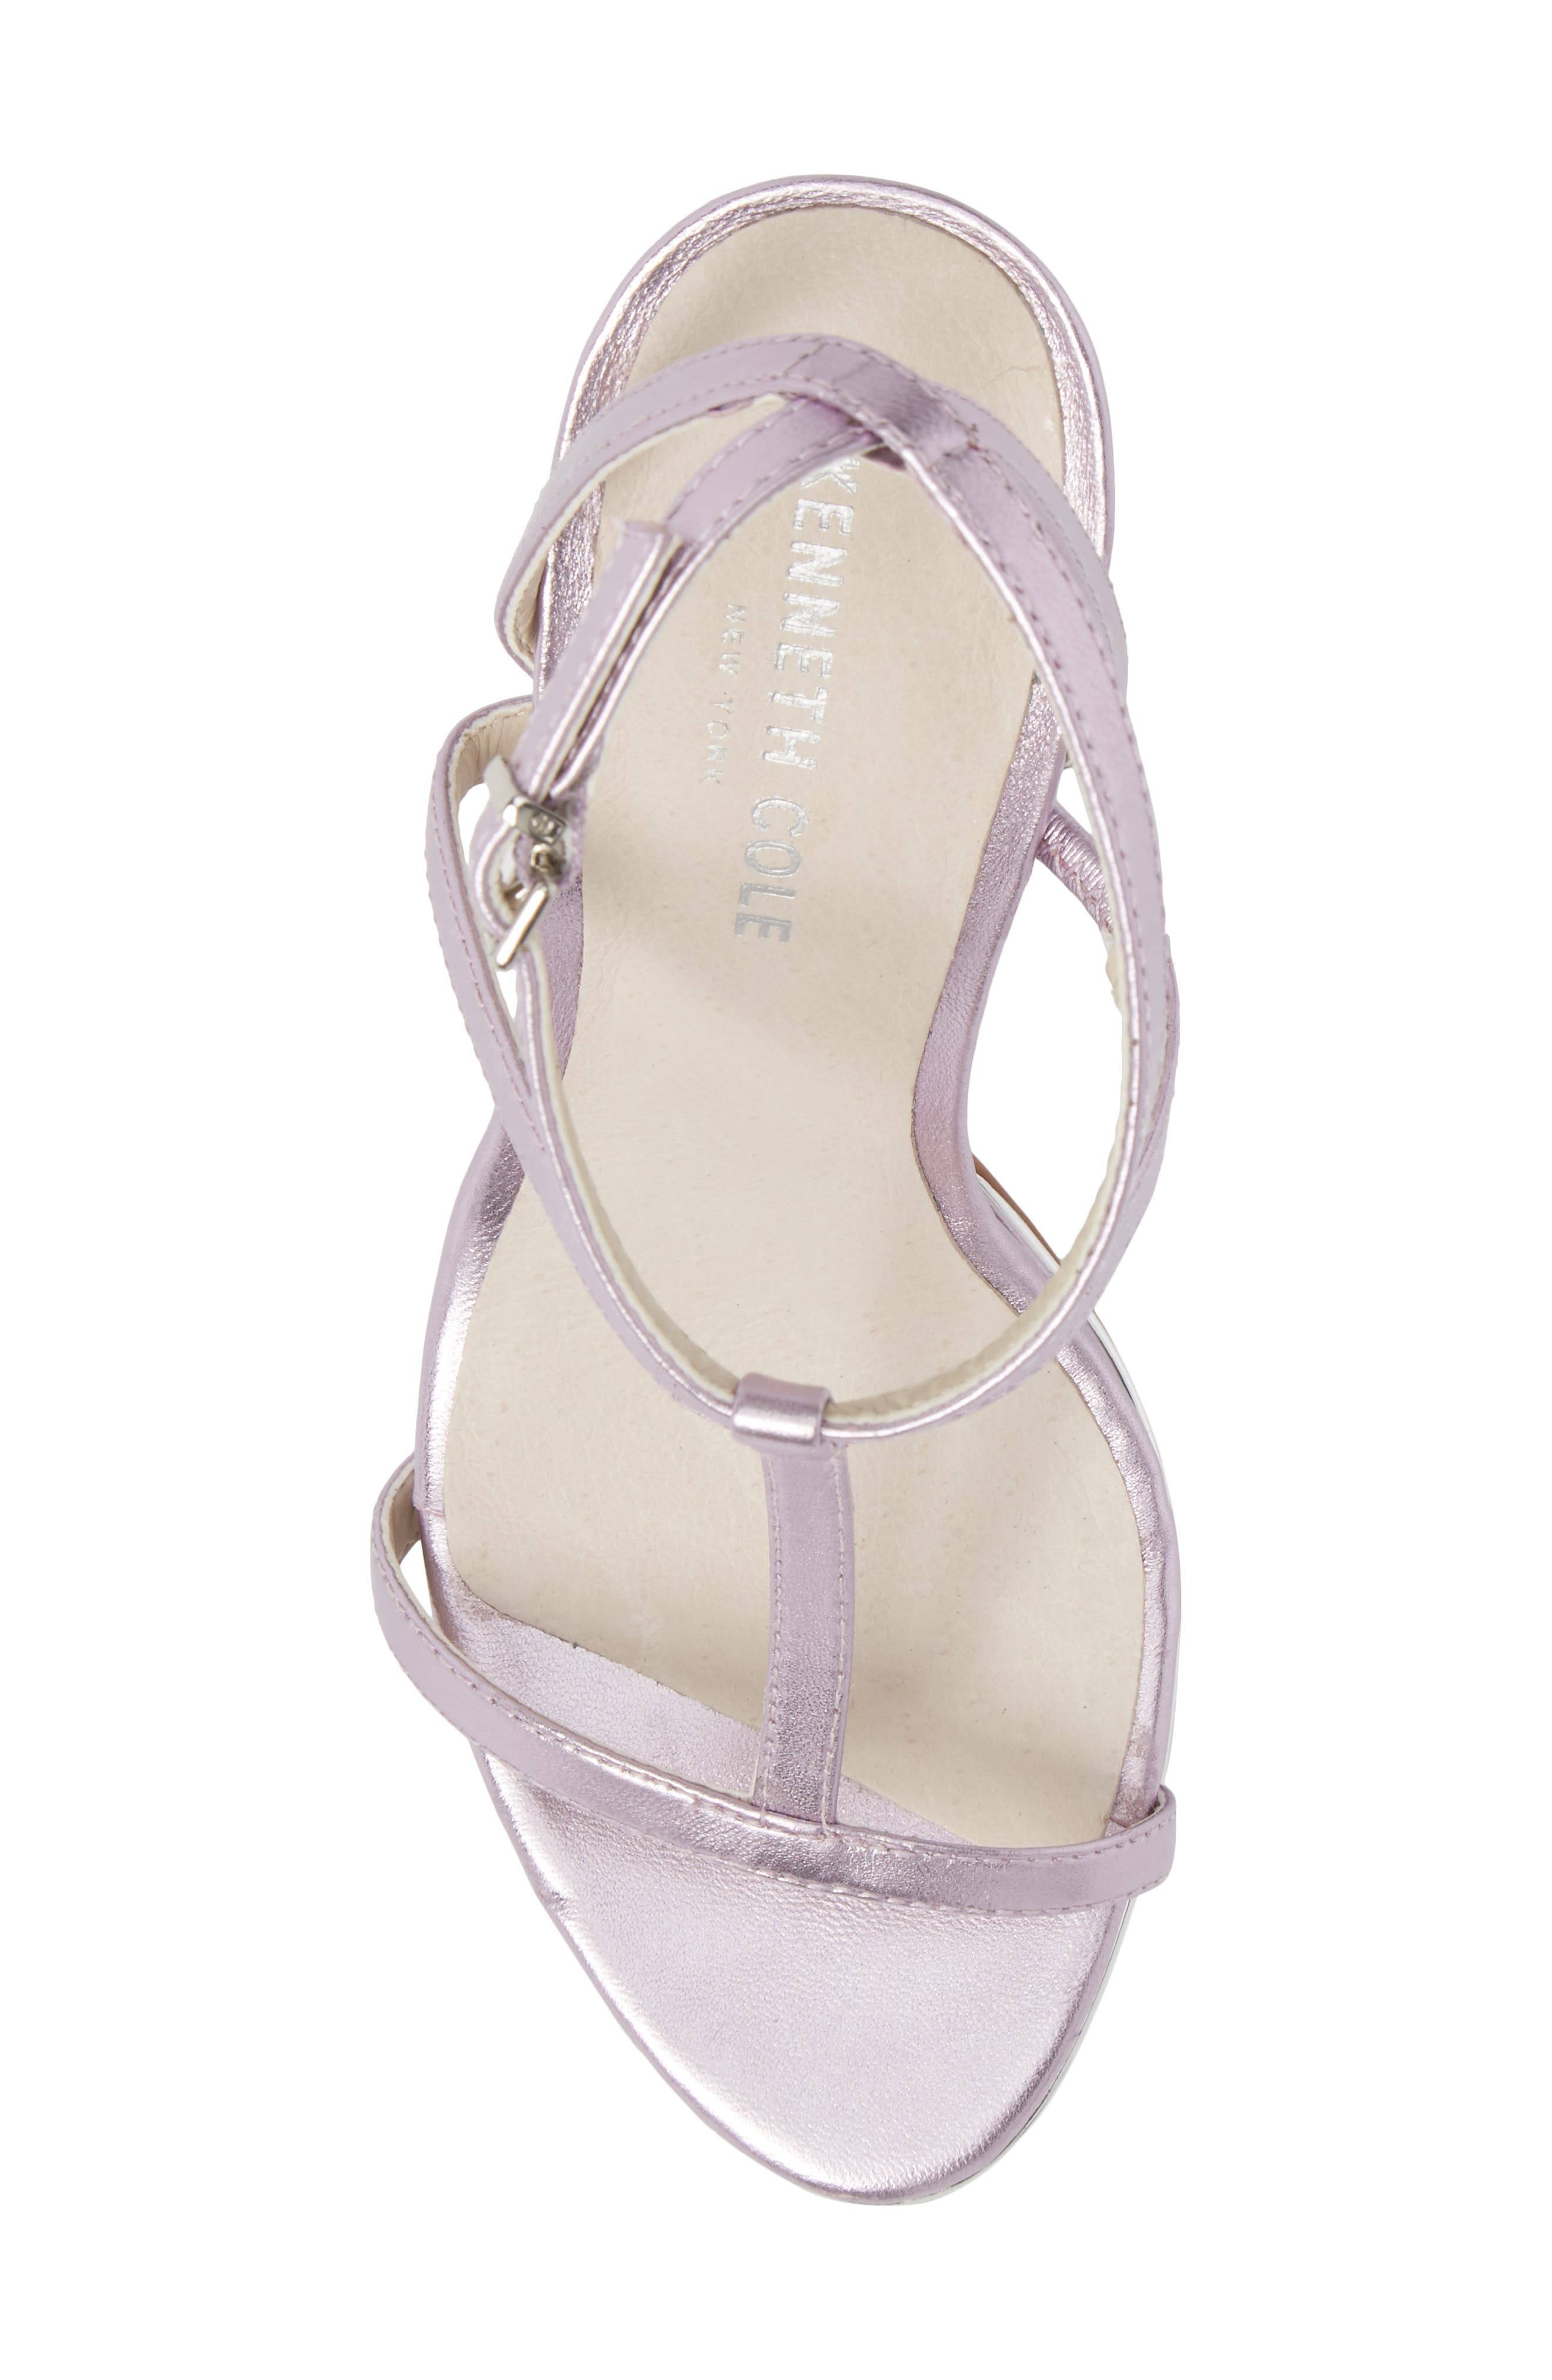 Bellamy Sandal,                             Alternate thumbnail 5, color,                             530